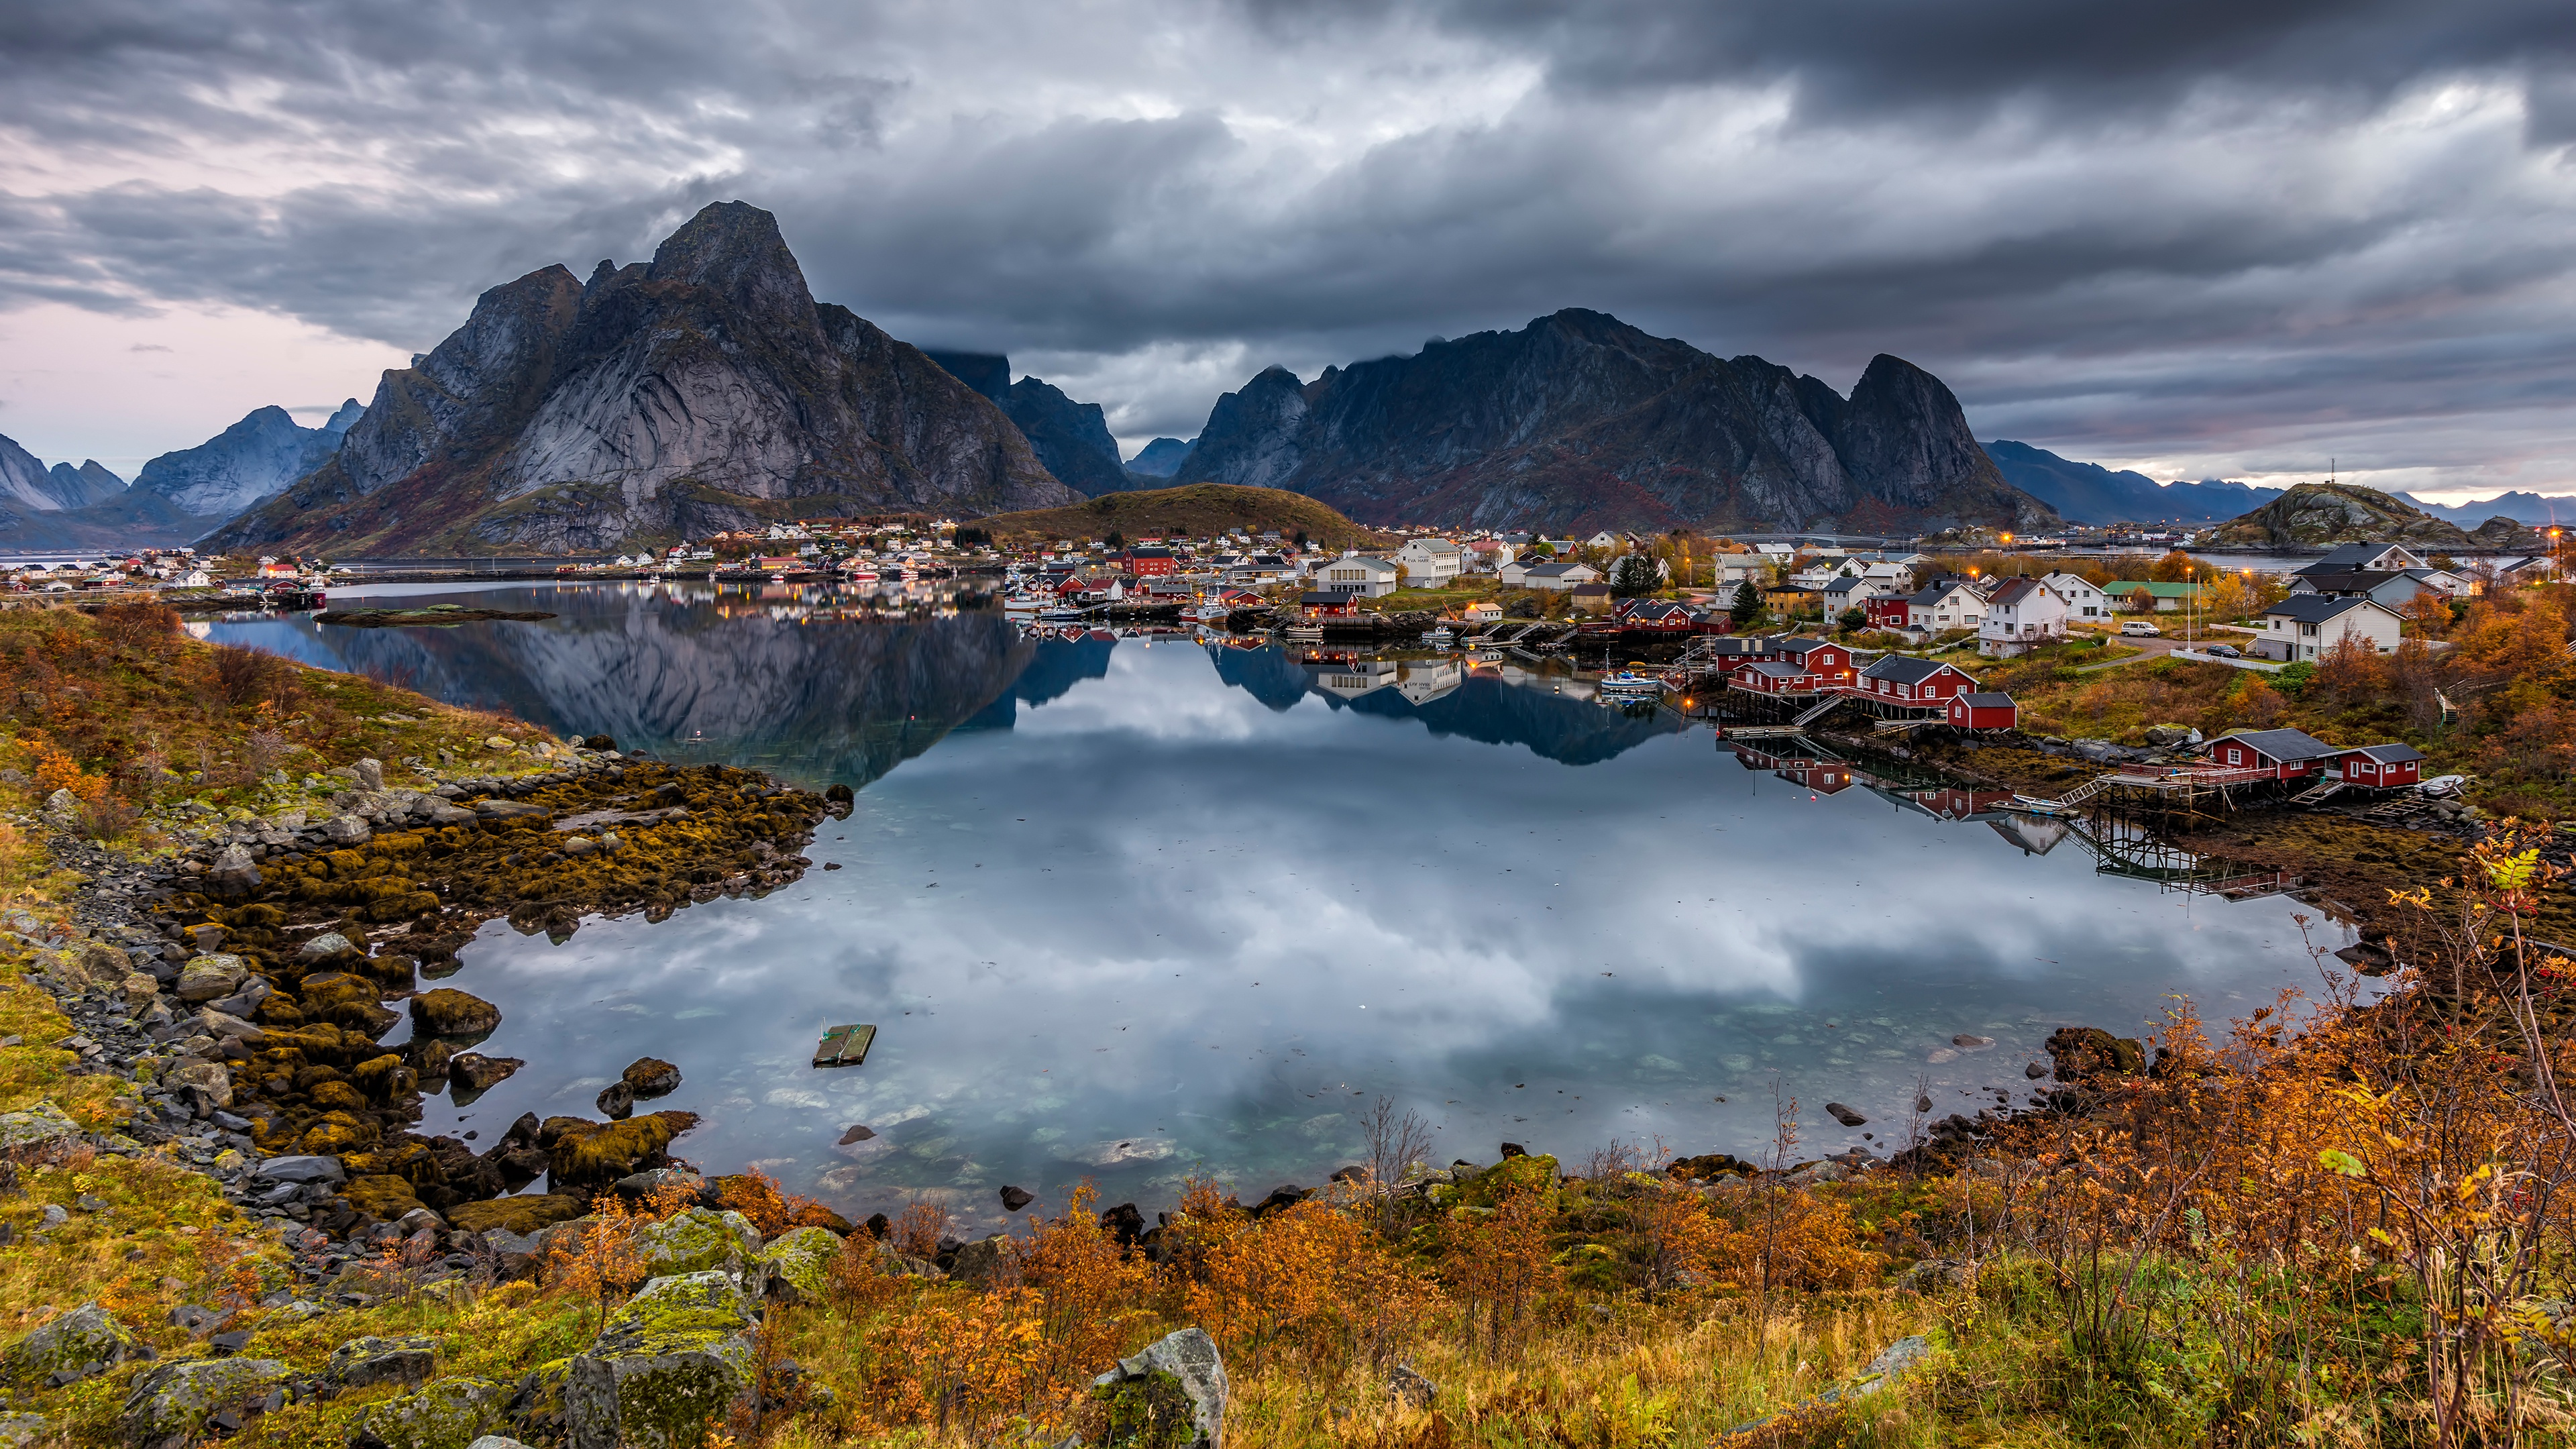 lofoten islands images - HD 3840×2160